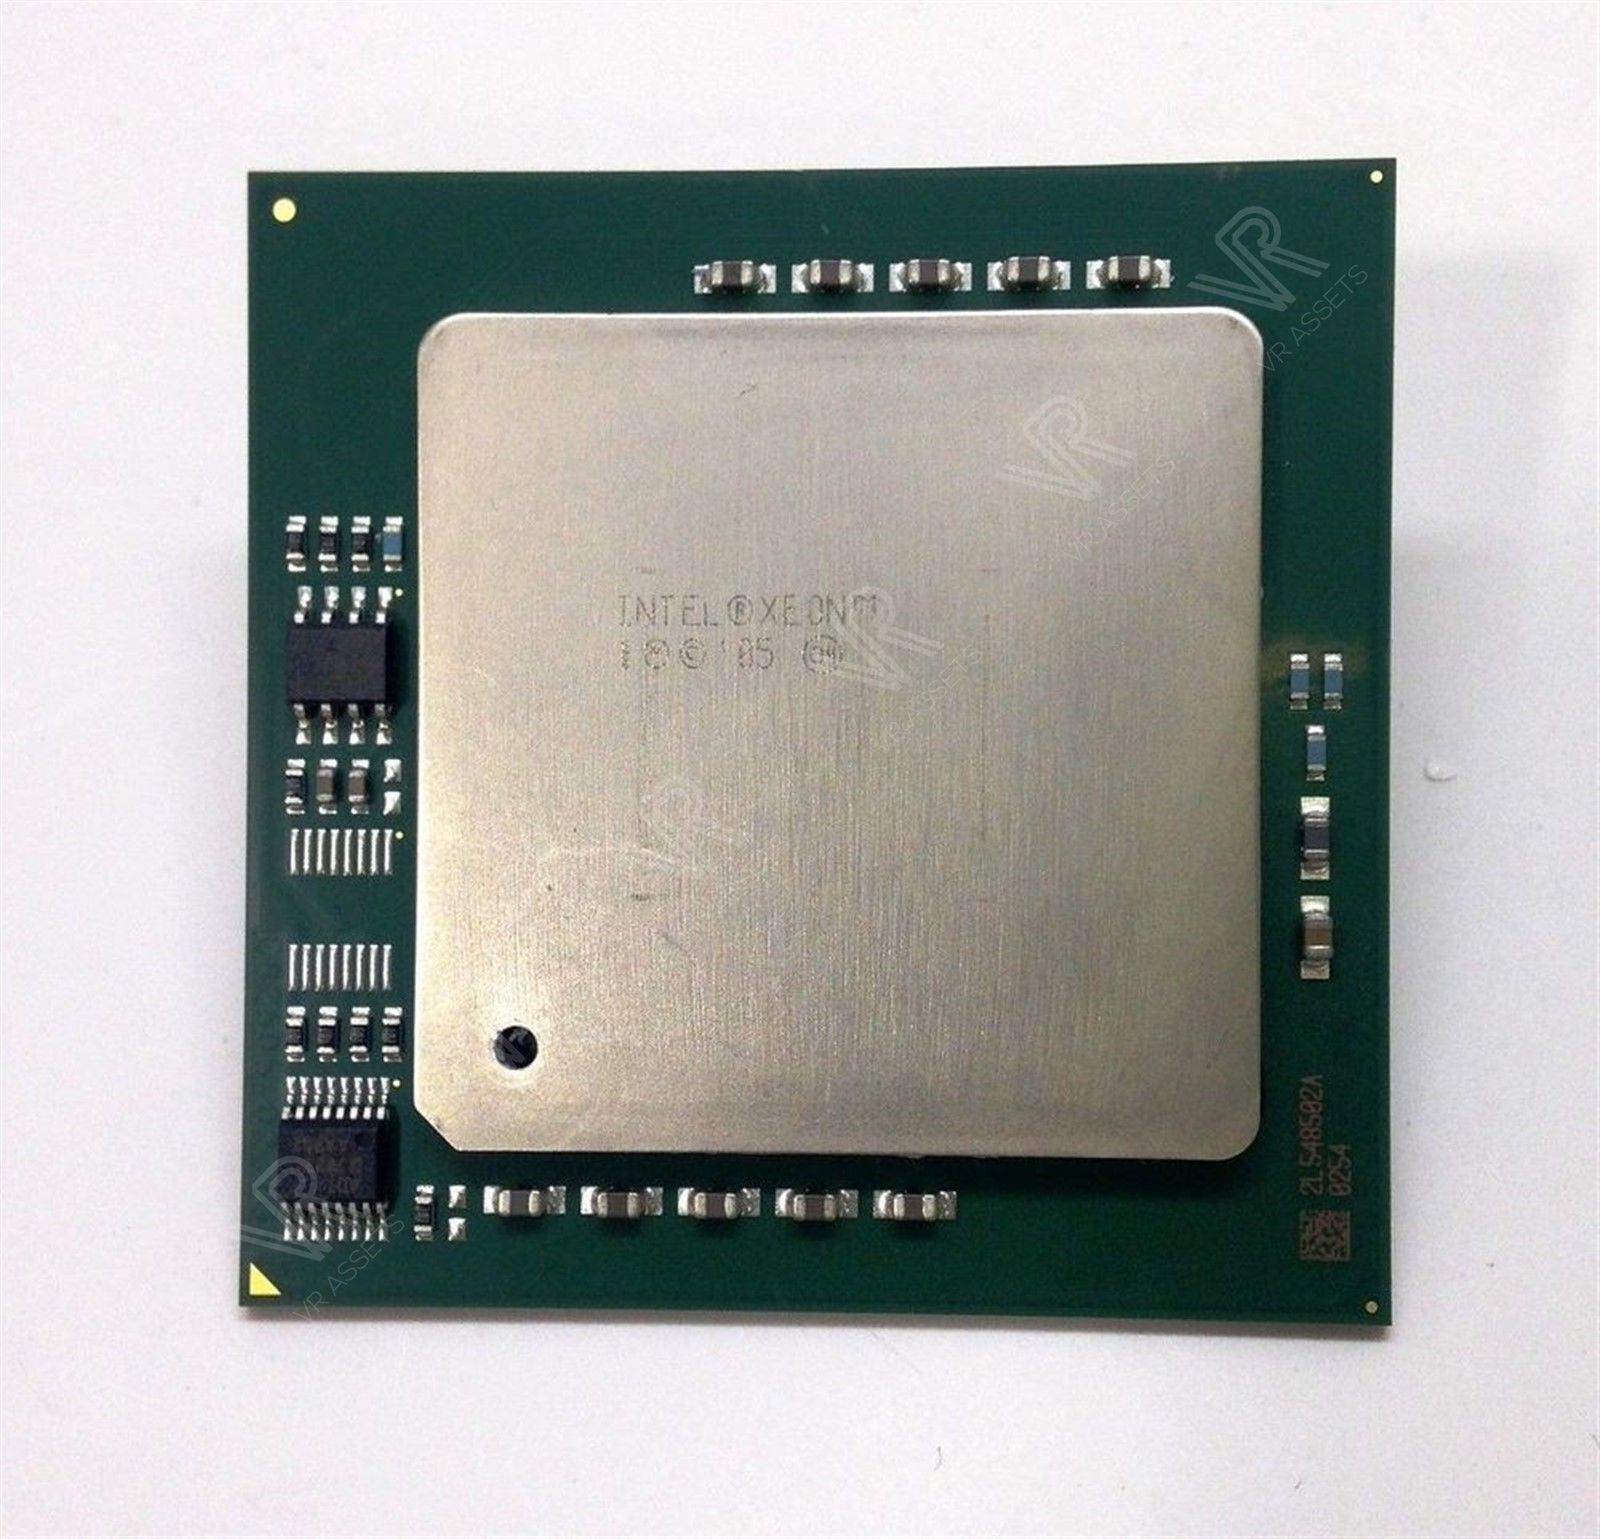 Intel Xeon MP 3.0GHz 8Mb Cache Socket 604 CPU Processor SL8EW